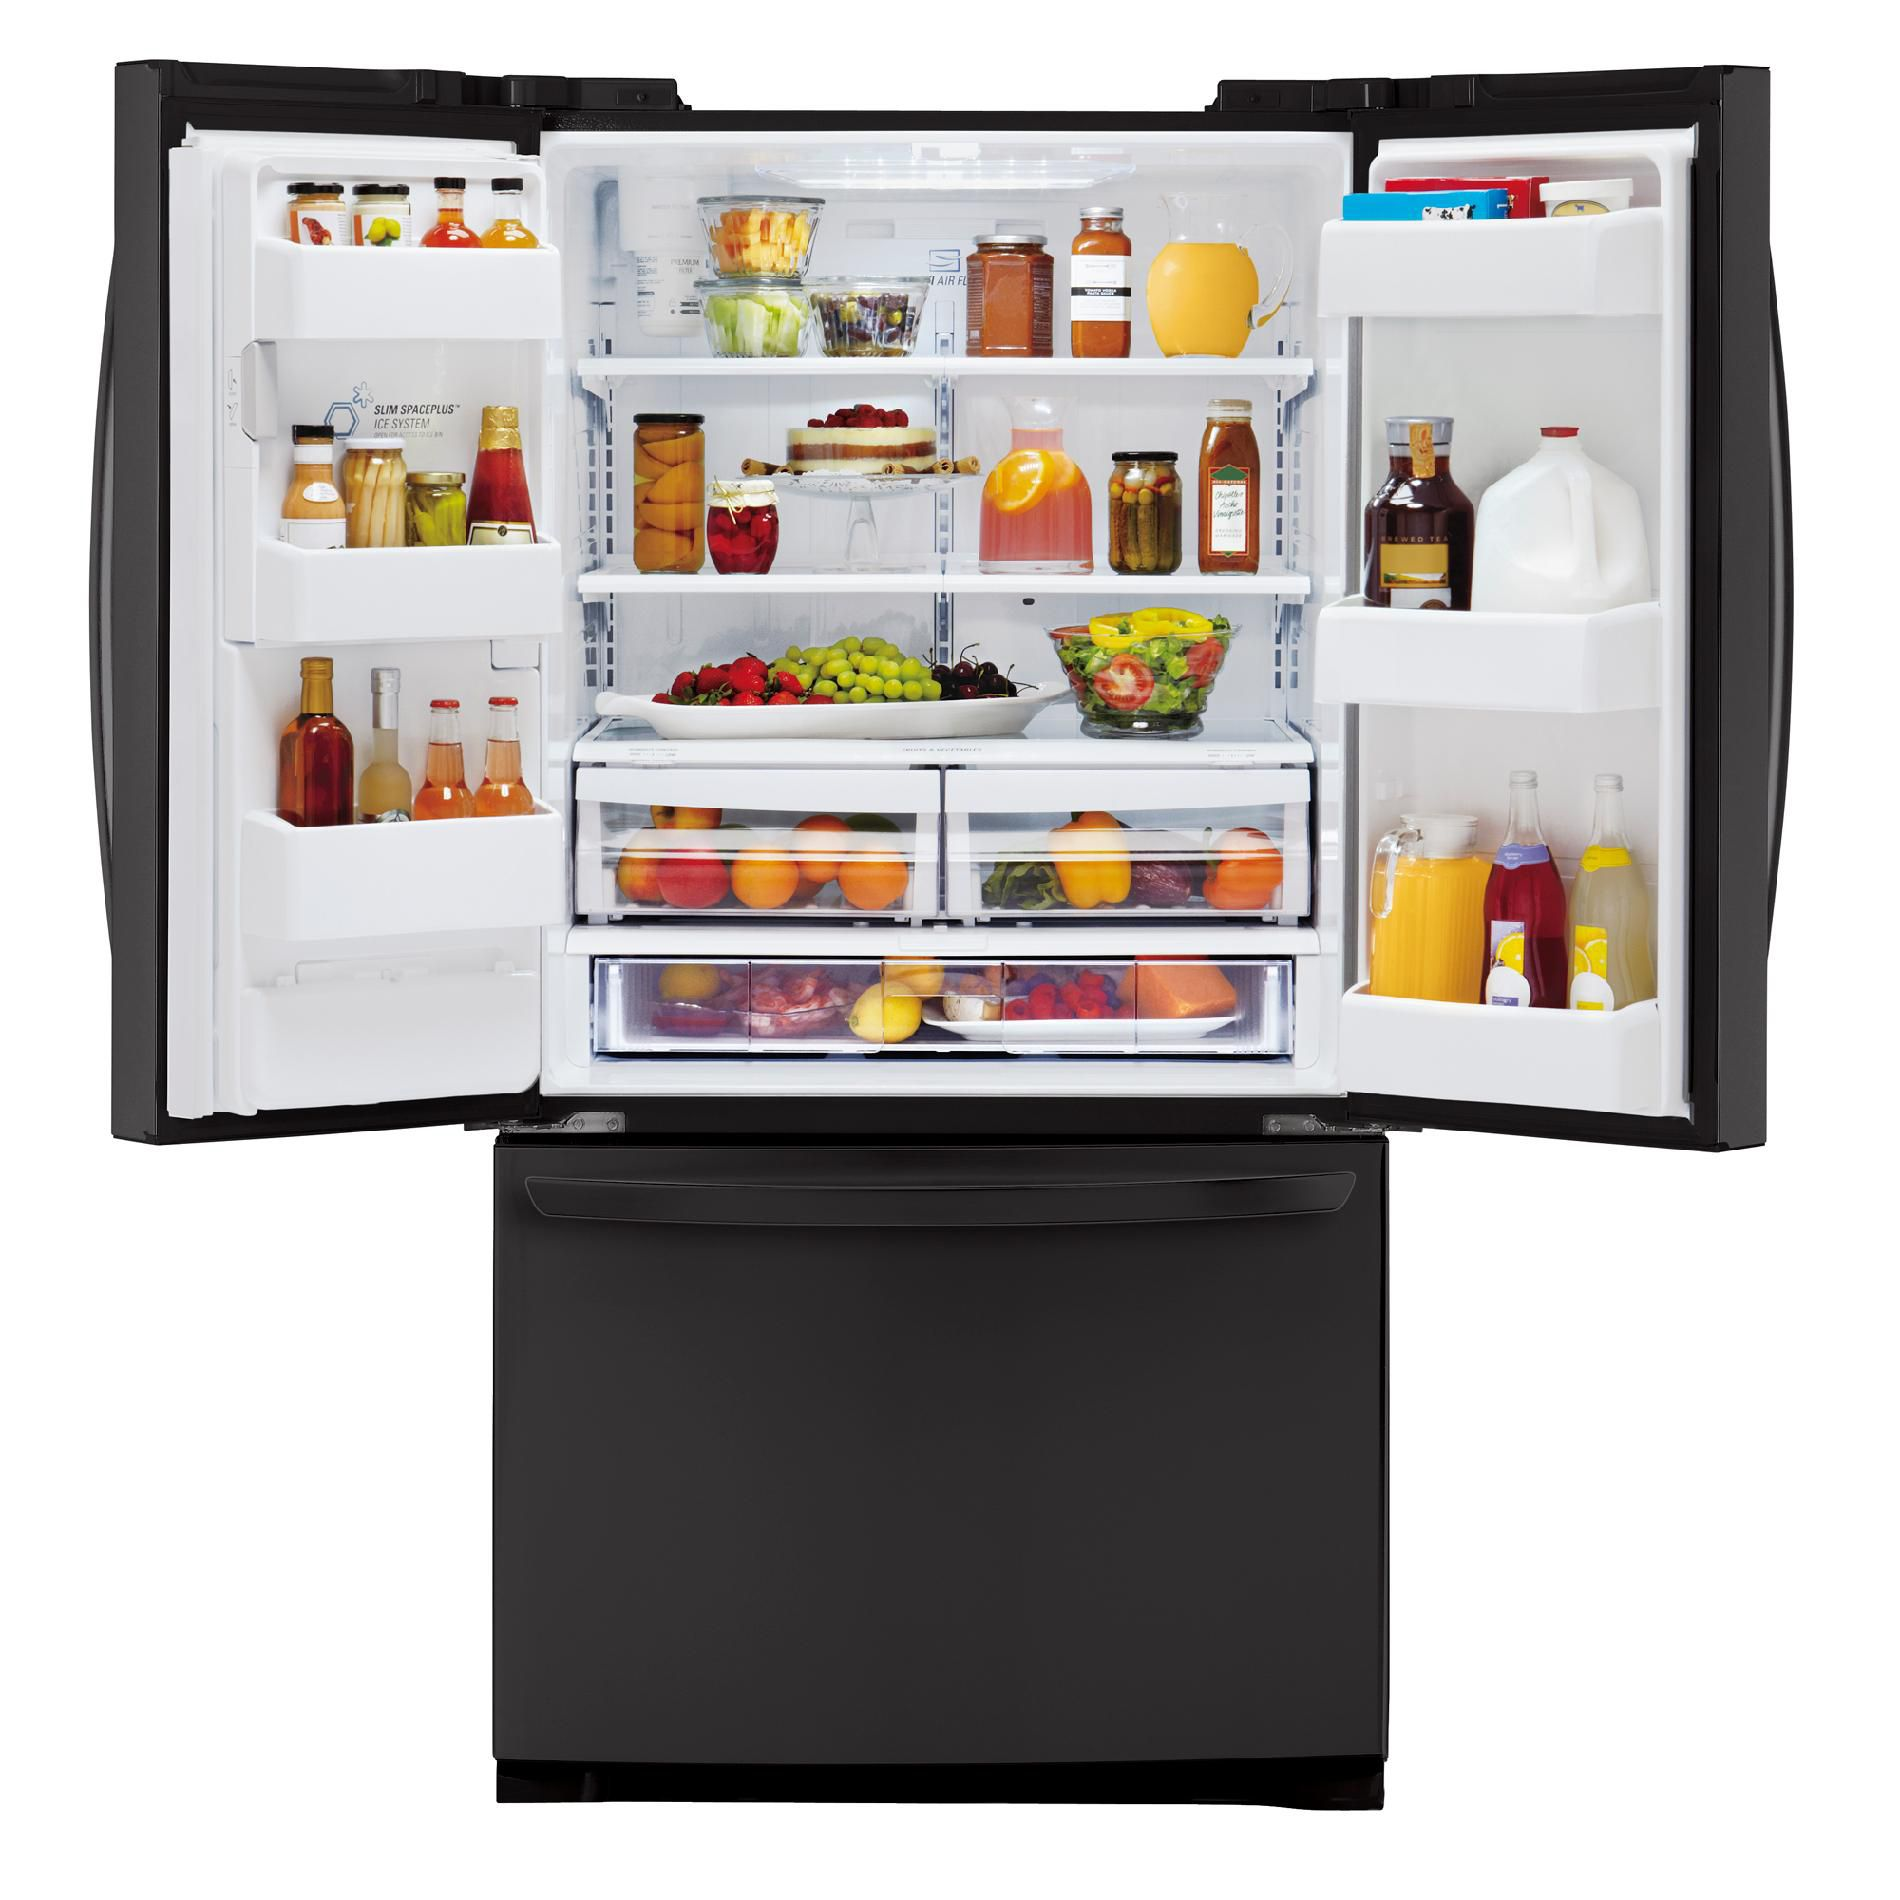 LG 24.7 cu. ft.  French Door Bottom-Freezer Refrigerator w/ Smart Cooling Technology - Black